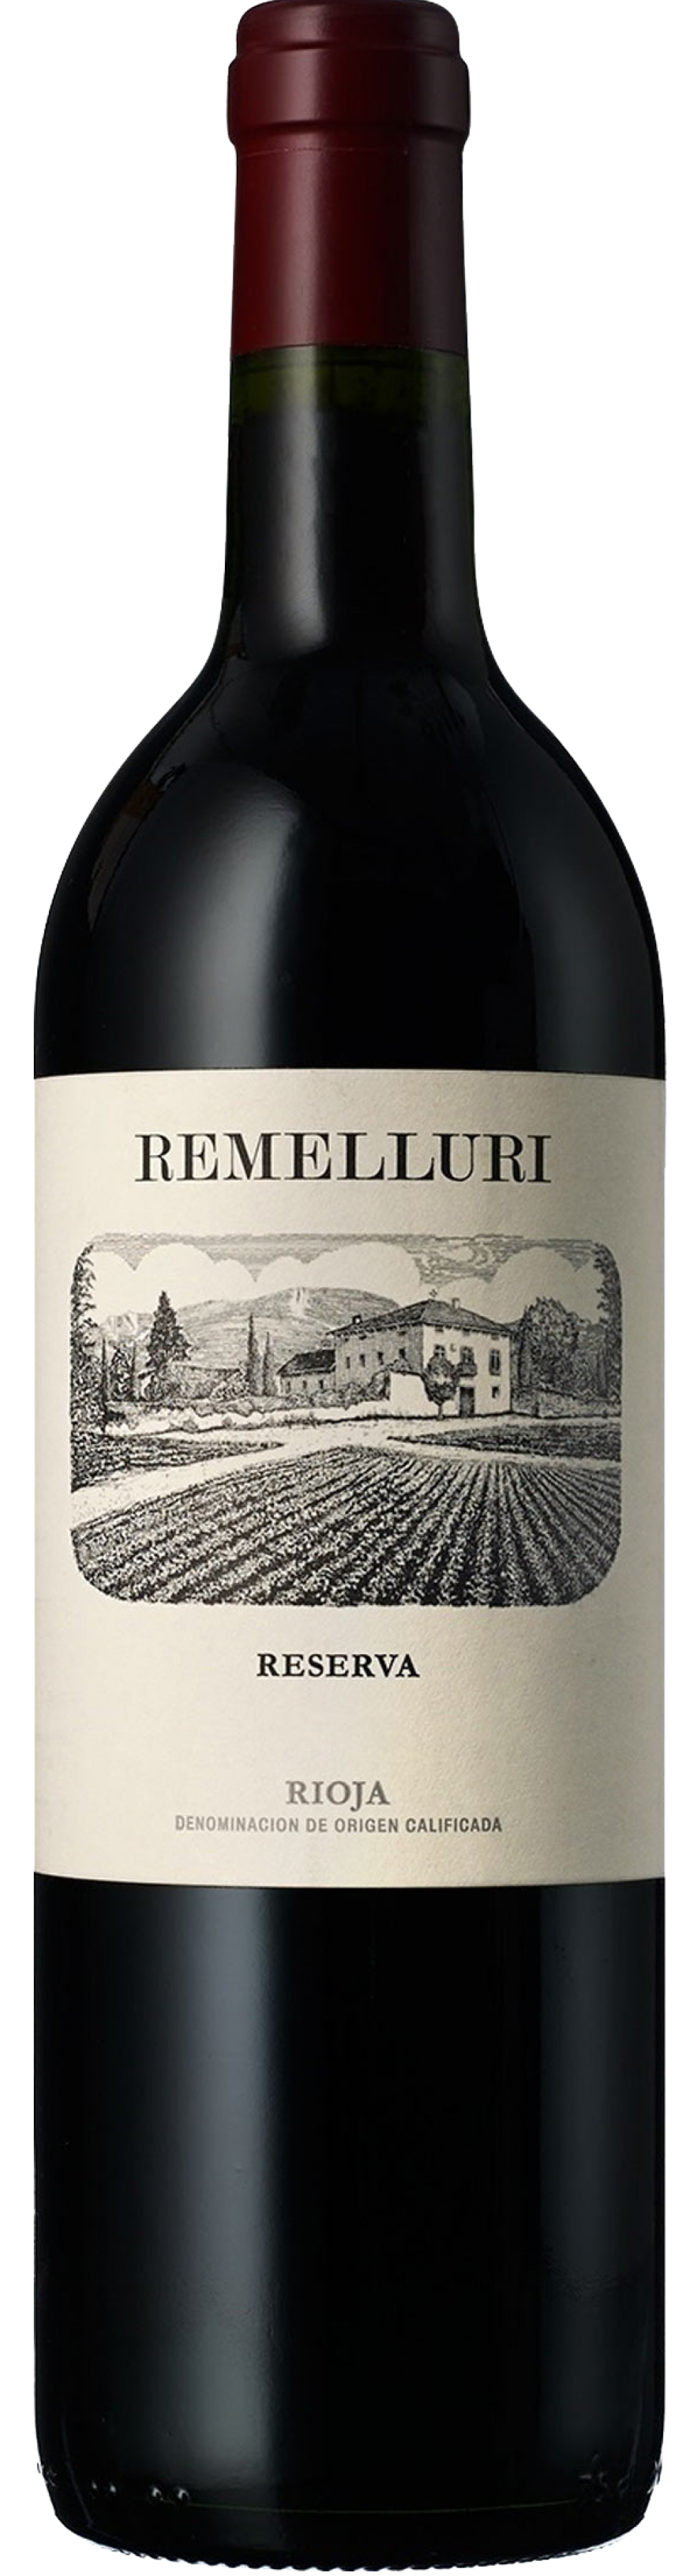 files/images/wines/Spain/remelluri/remelluri-reserva-2010 .png